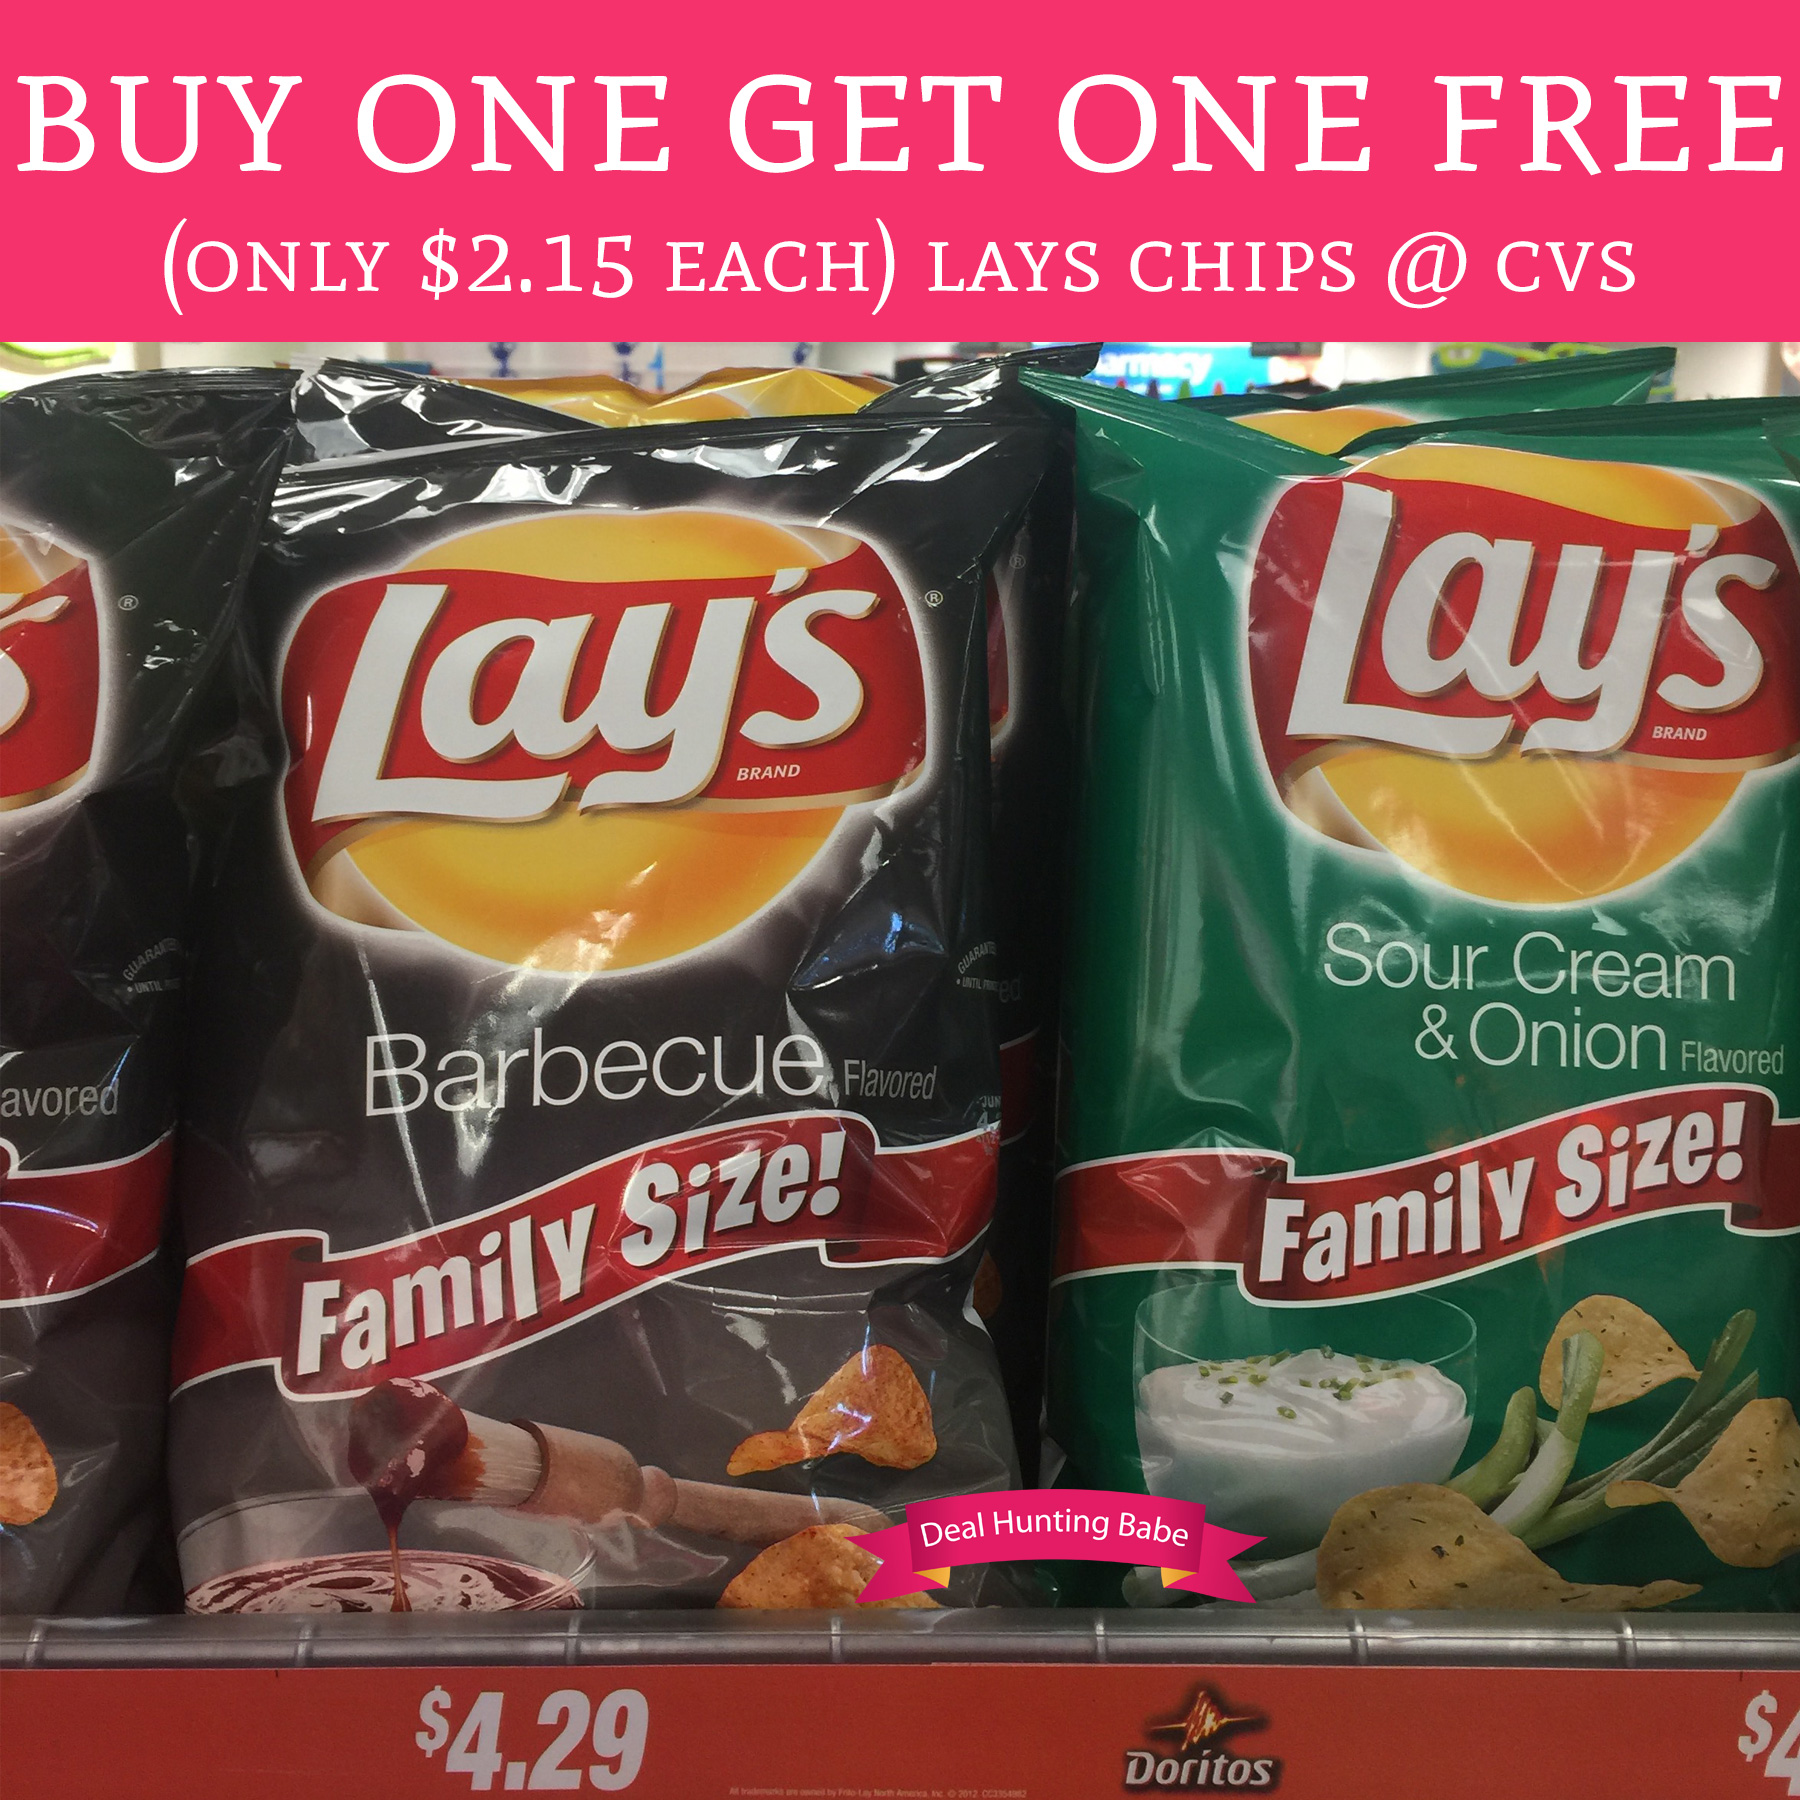 Buy: Buy One Get One Free Lay's Chips @ CVS (Only $2.15 Each